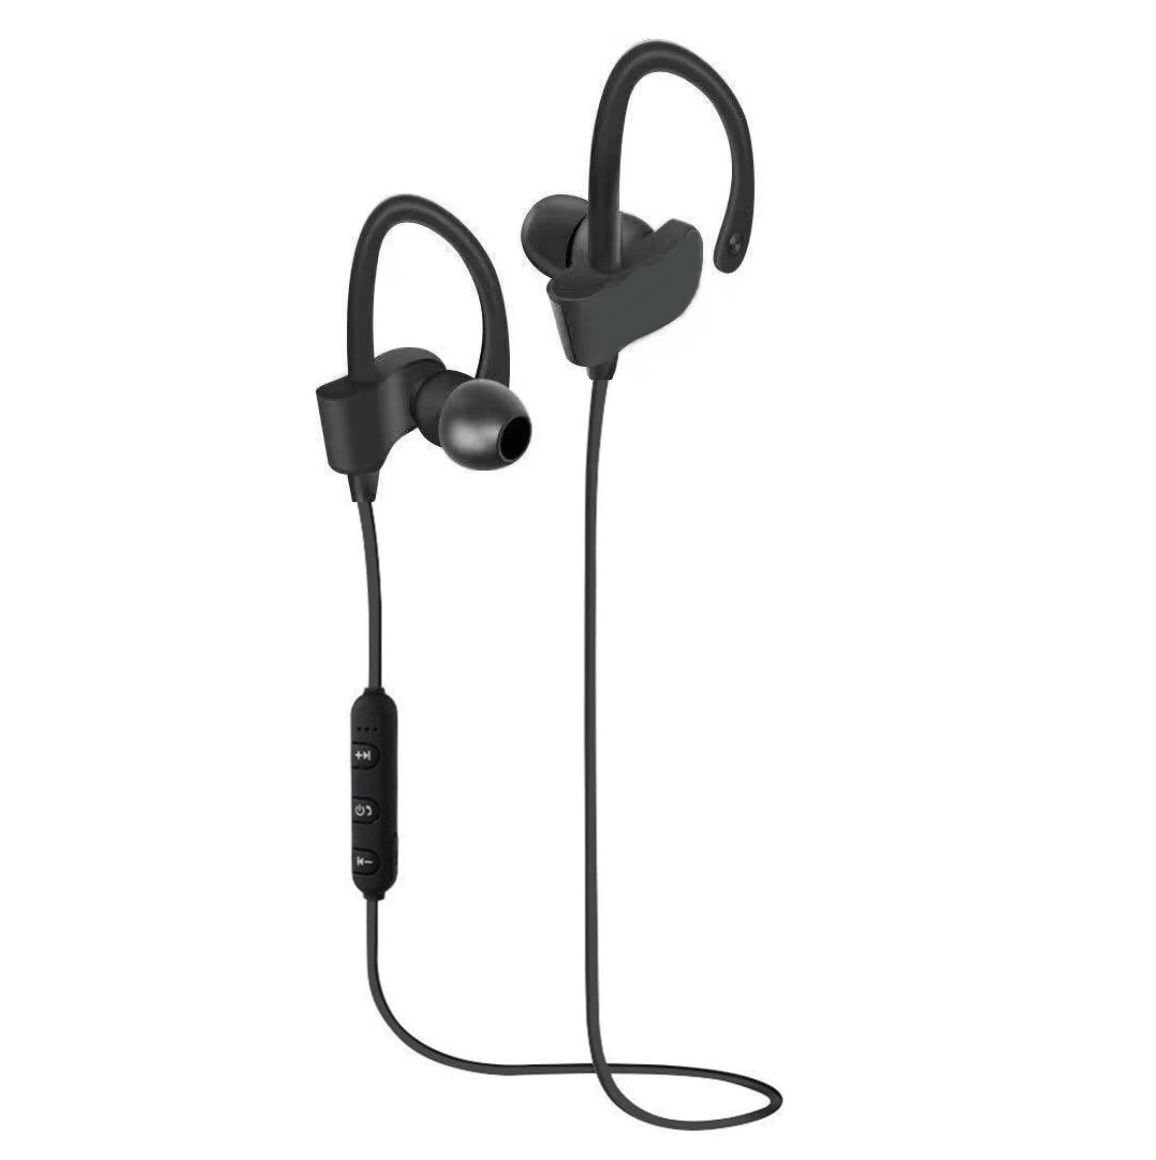 Freckle QC-10 Bluetooth Wireless Headphones Running,Gyming Headset With Phone Wallet with Pocket for Credit Card,Business Card.